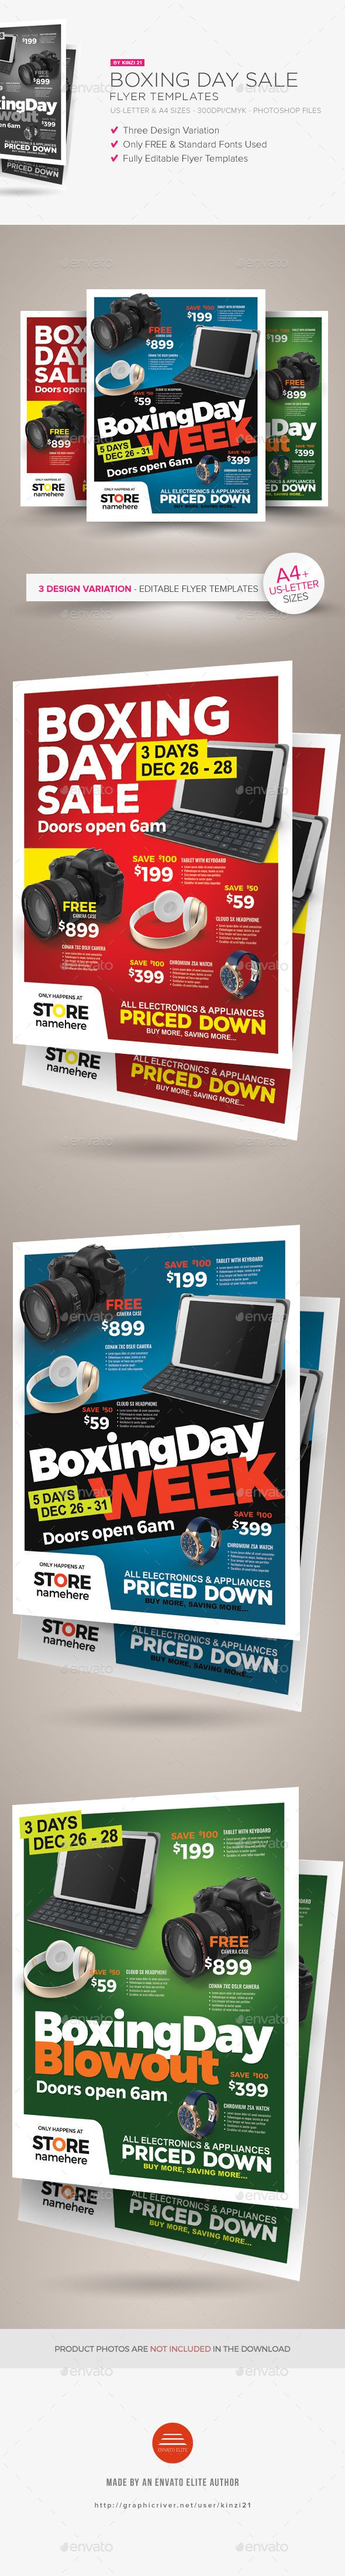 Boxing Day Sale Flyer Templates  — PSD Template #big sale #leaflet • Download ➝ https://graphicriver.net/item/boxing-day-sale-flyer-templates/18464467?ref=pxcr